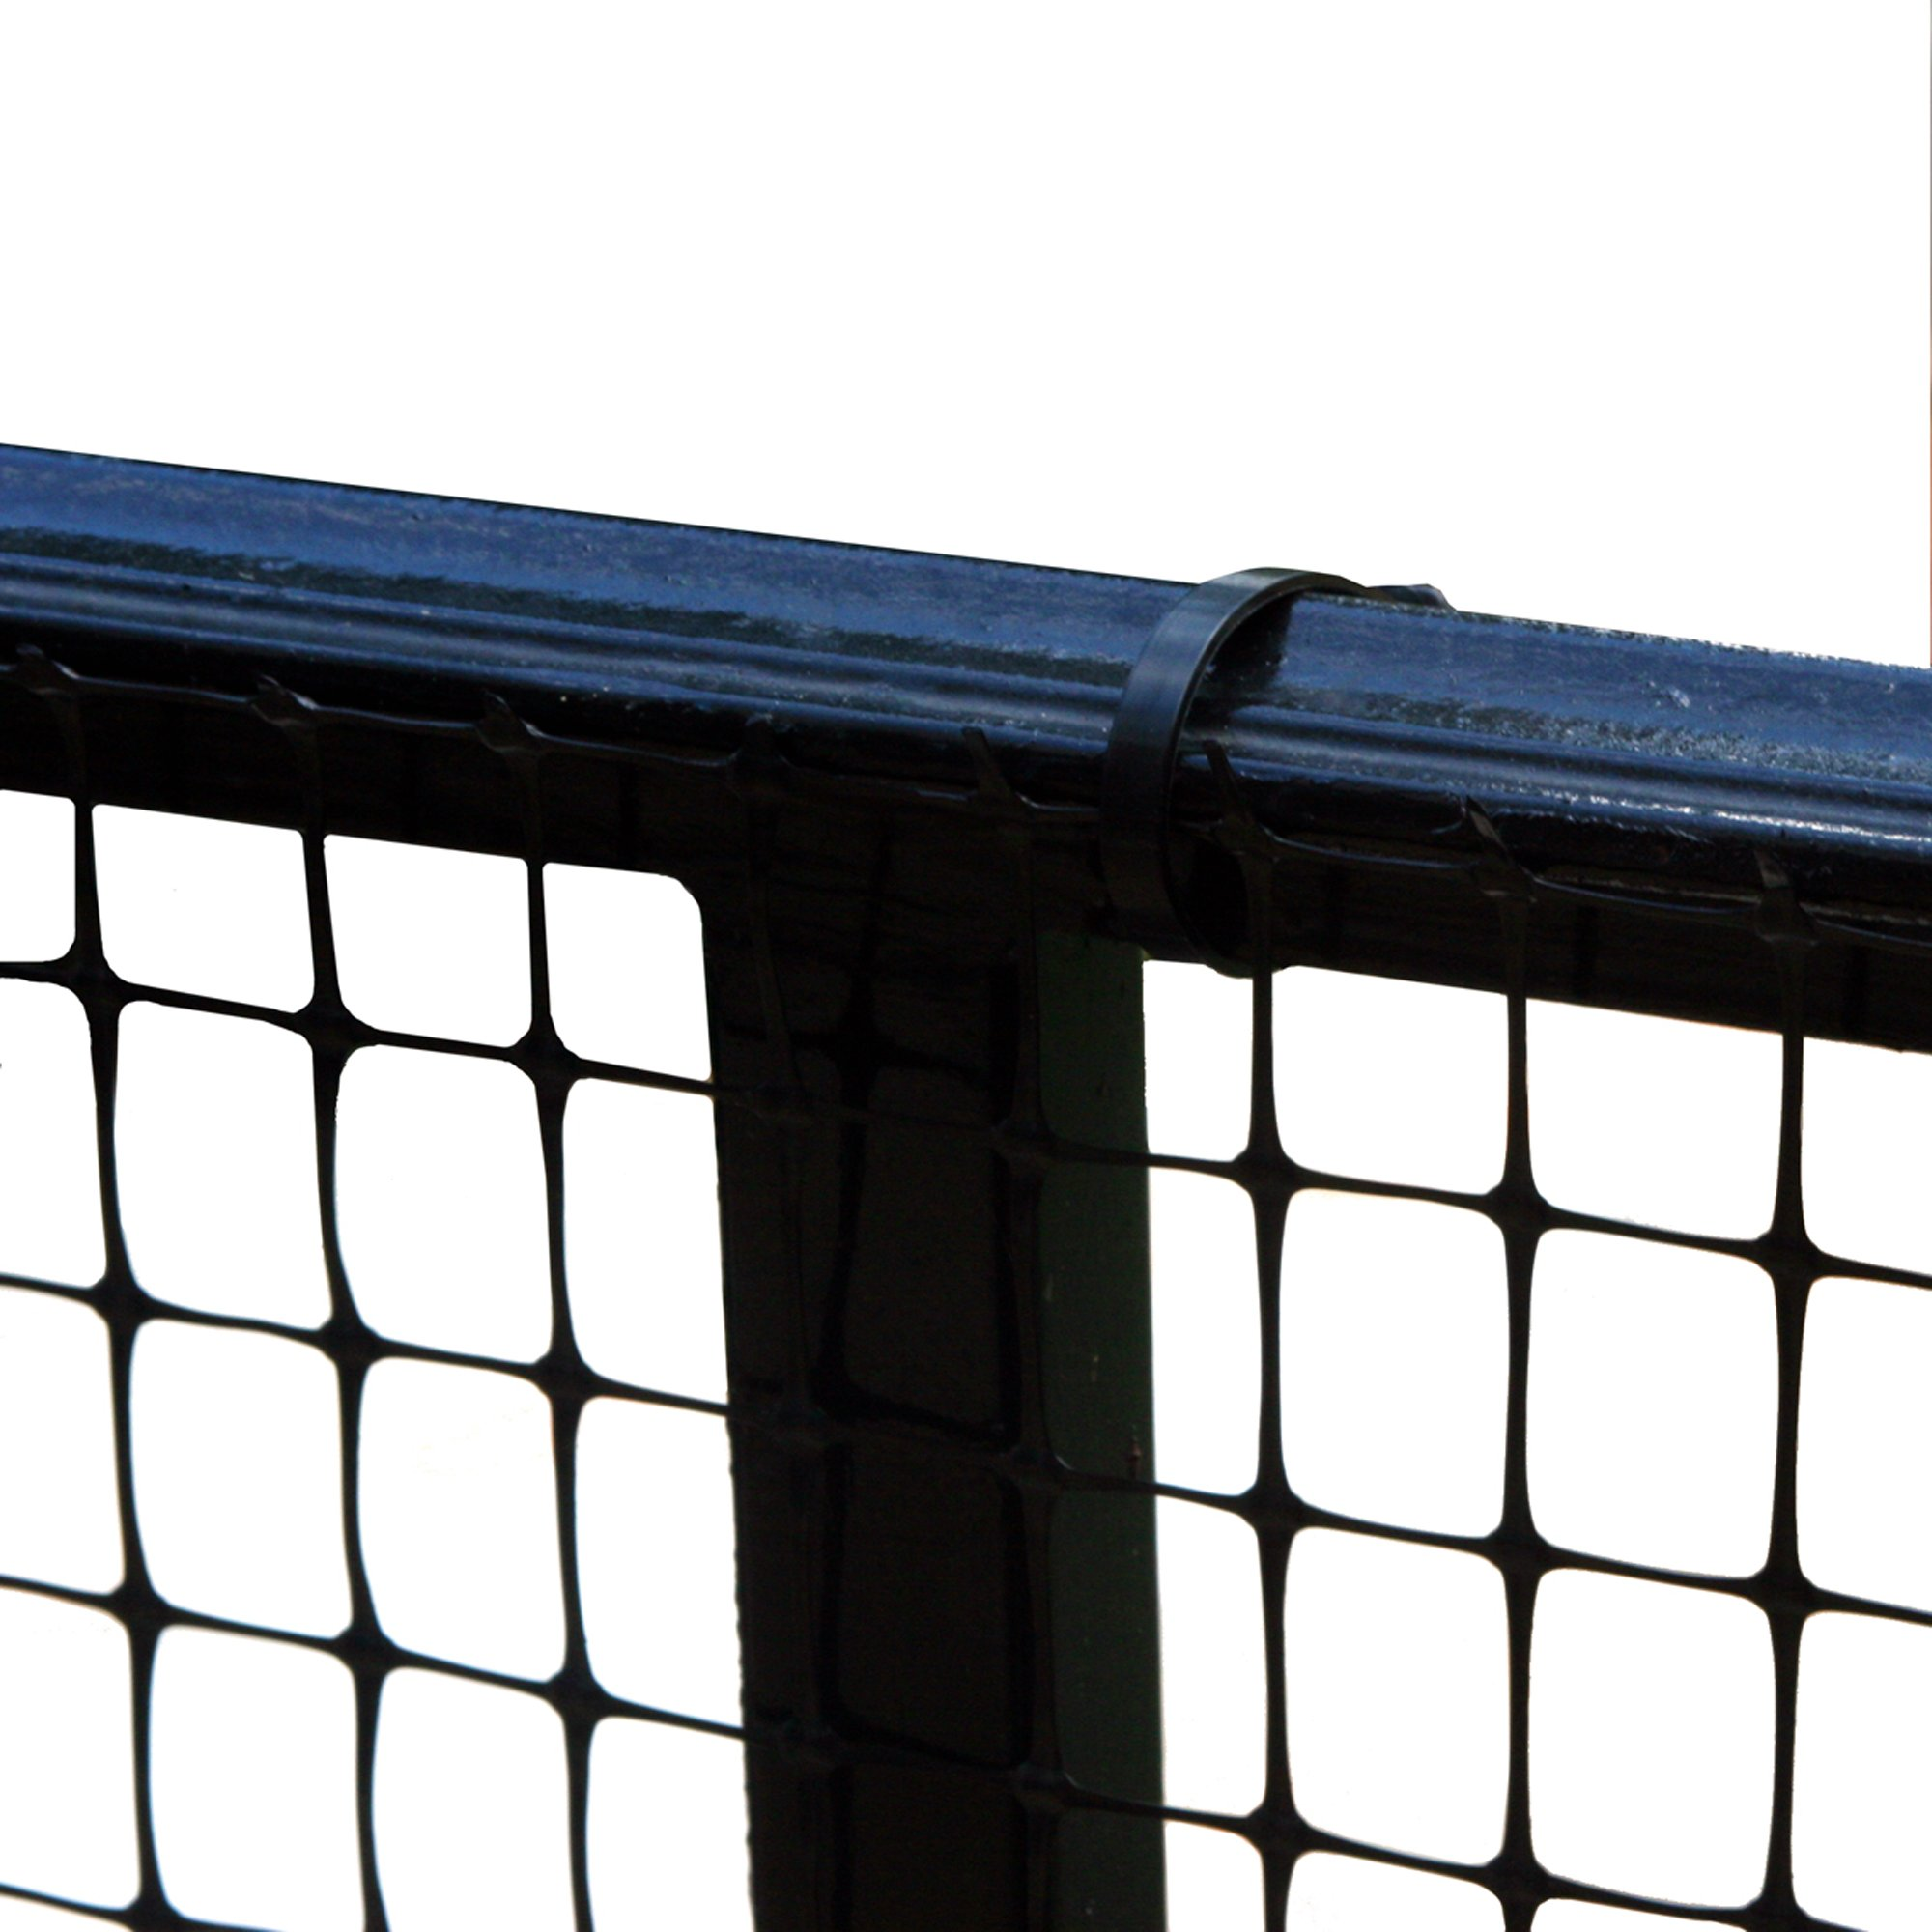 Cardinal Gates Heavy Duty Outdoor Deck Netting Black Petco